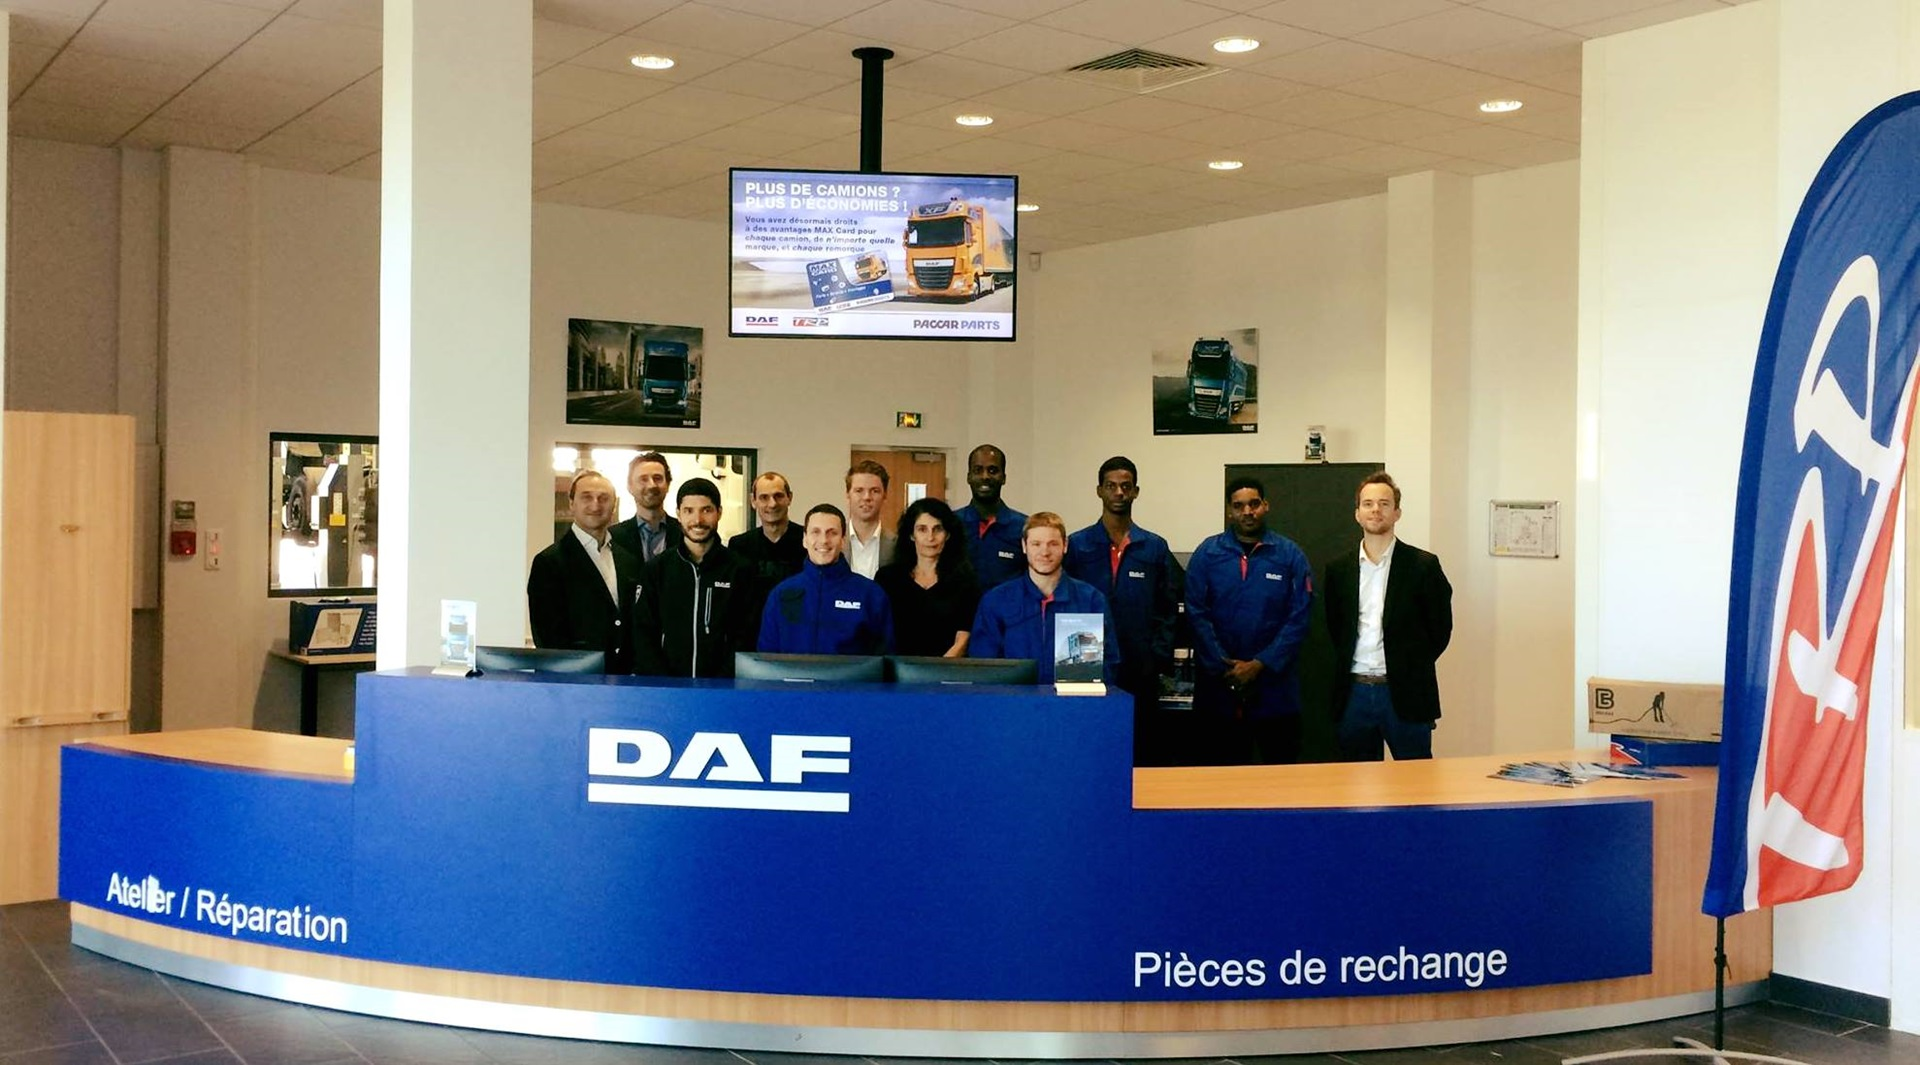 DAF Paris team